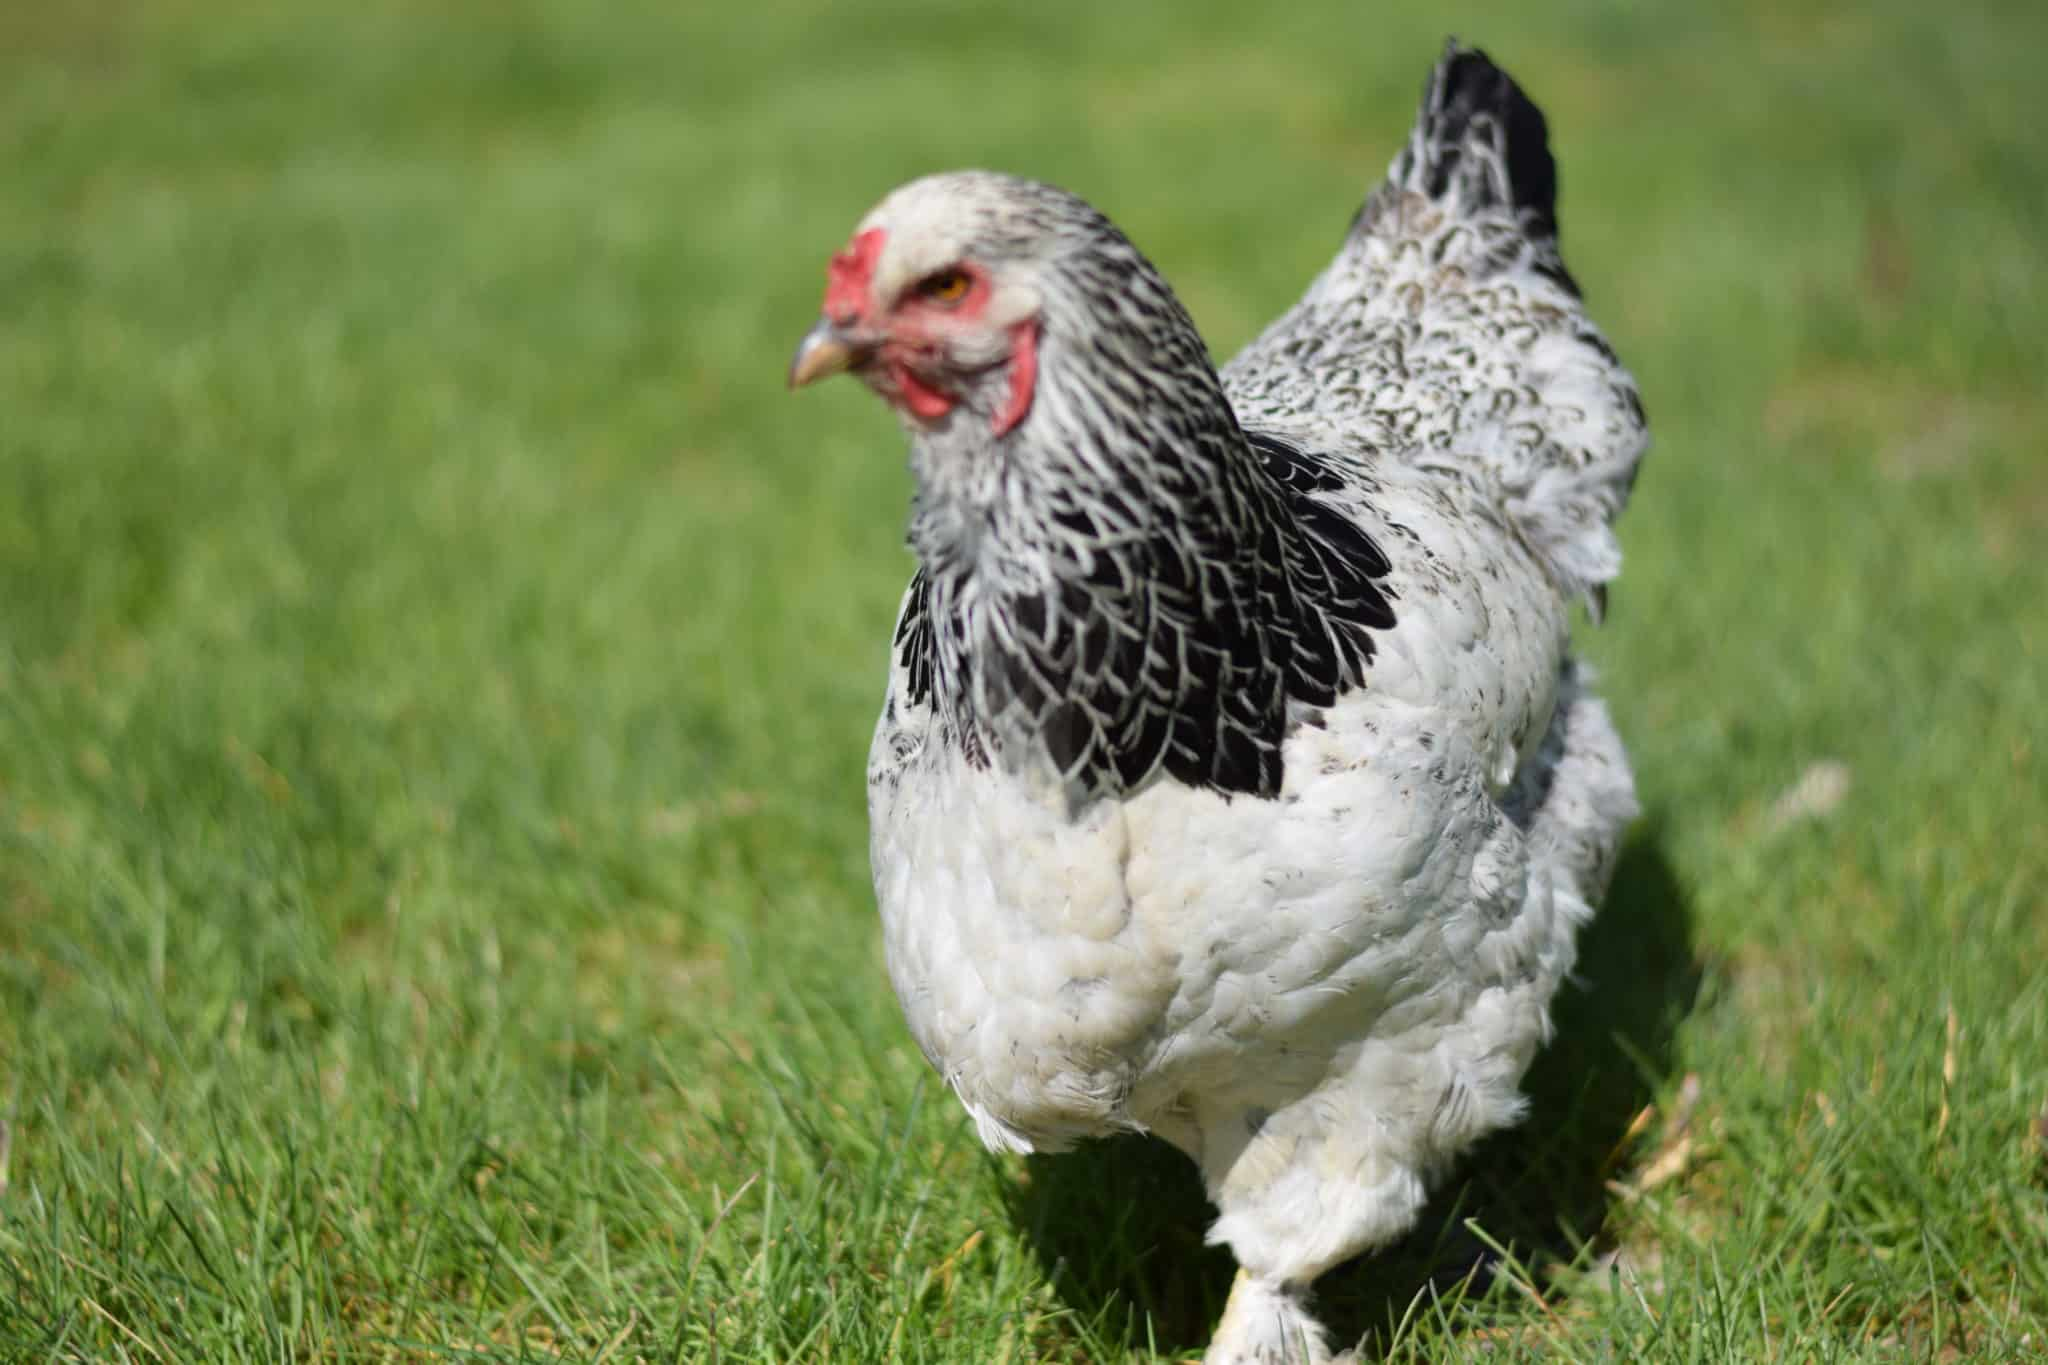 brahma chicken walking in a grassy lawn